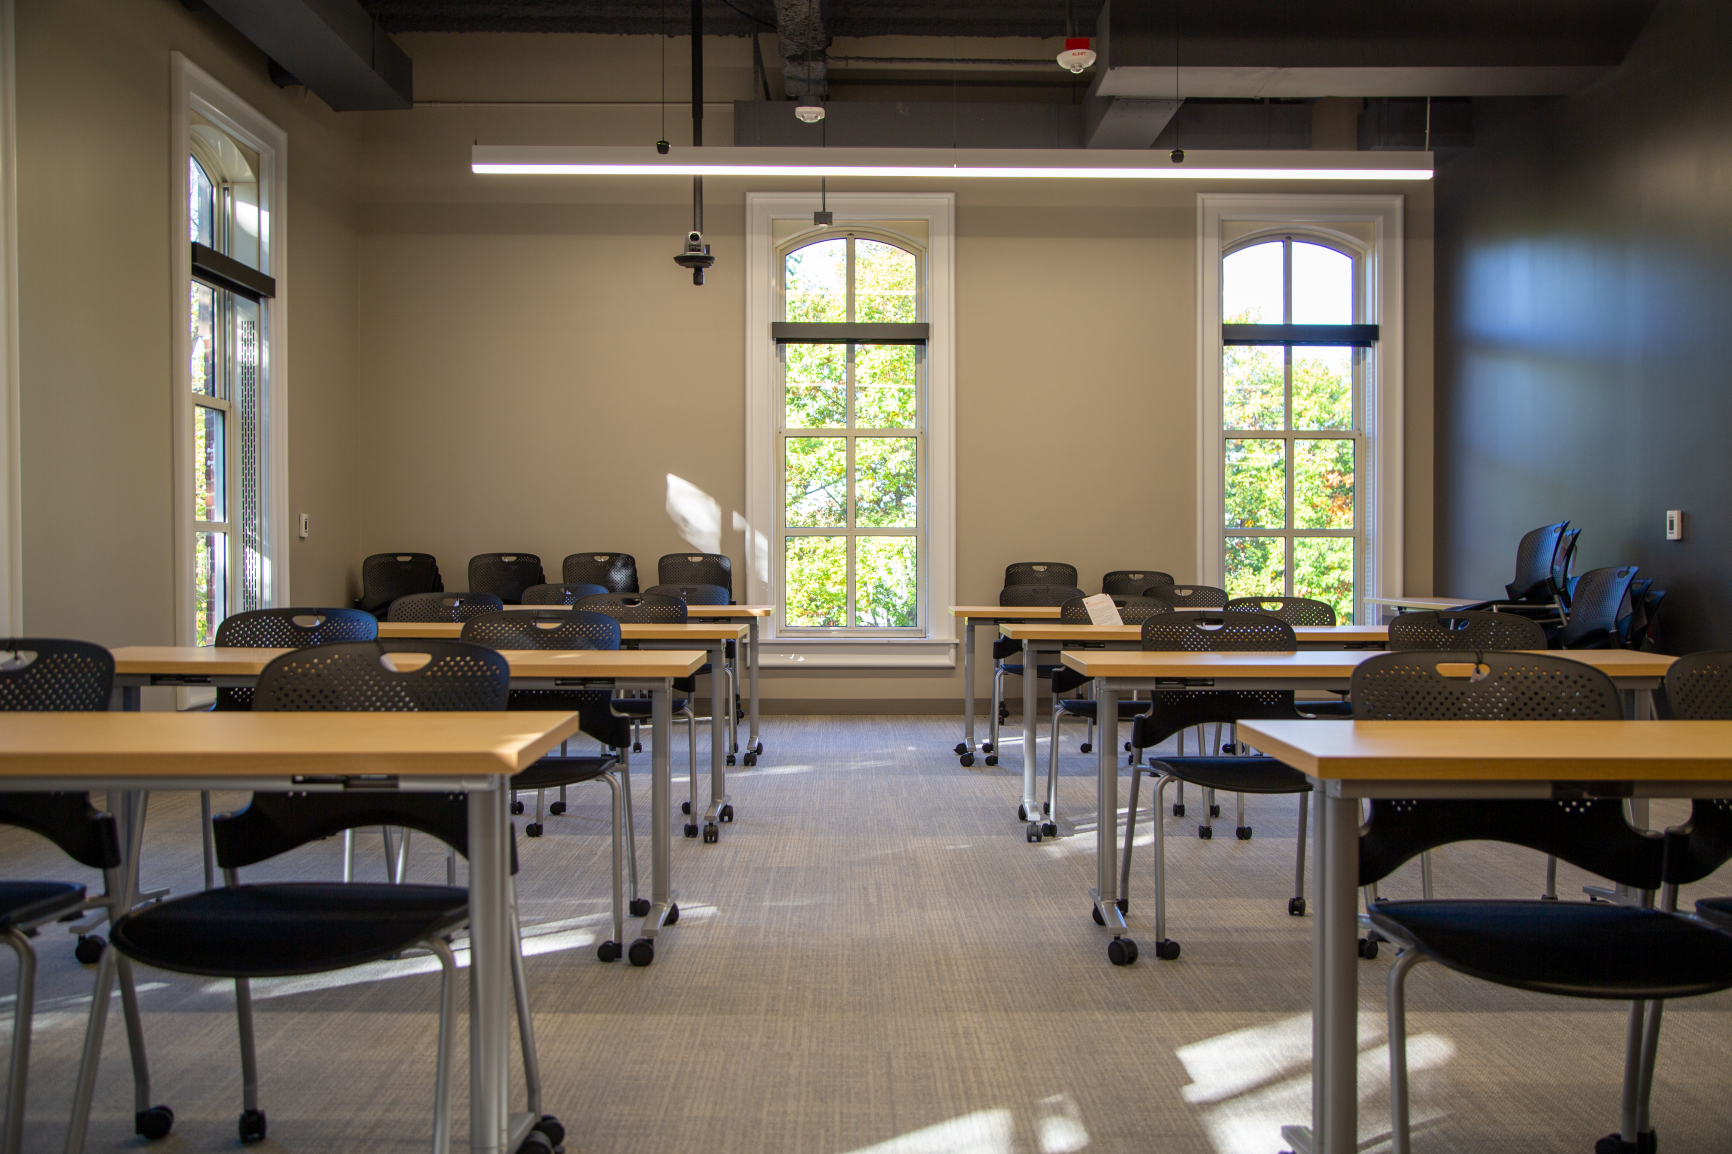 Caper chairs with mesh seating provide comfort for students in this flexible classroom space.